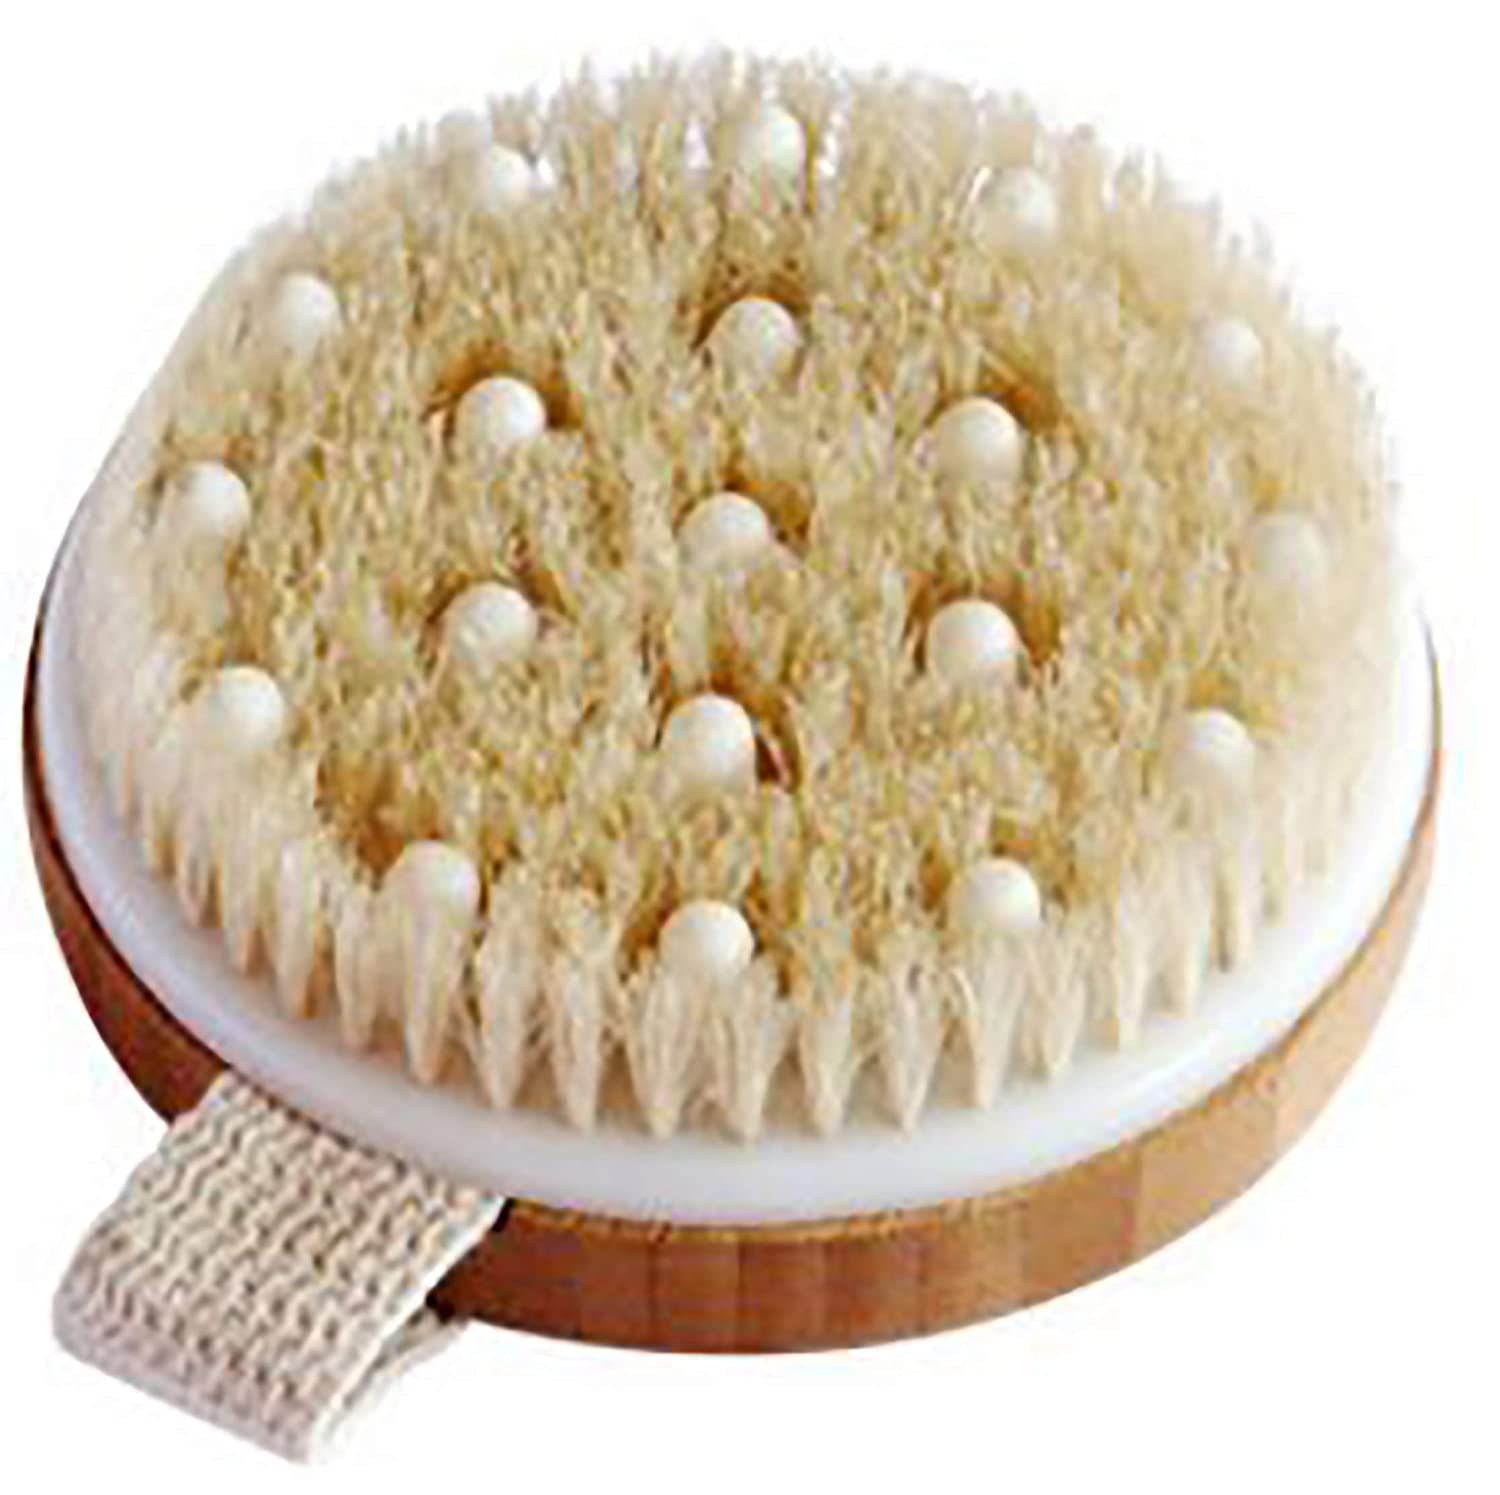 BEST DEAL Dry Brushing Bamboo Body Brush - Best for Exfoliating Dry Skin, Lymphatic Drainage and Cellulite Treatment - Organic Spa Exfoliation and Massage Scrub Brush with Natural Boar Bristles Nuva Brands